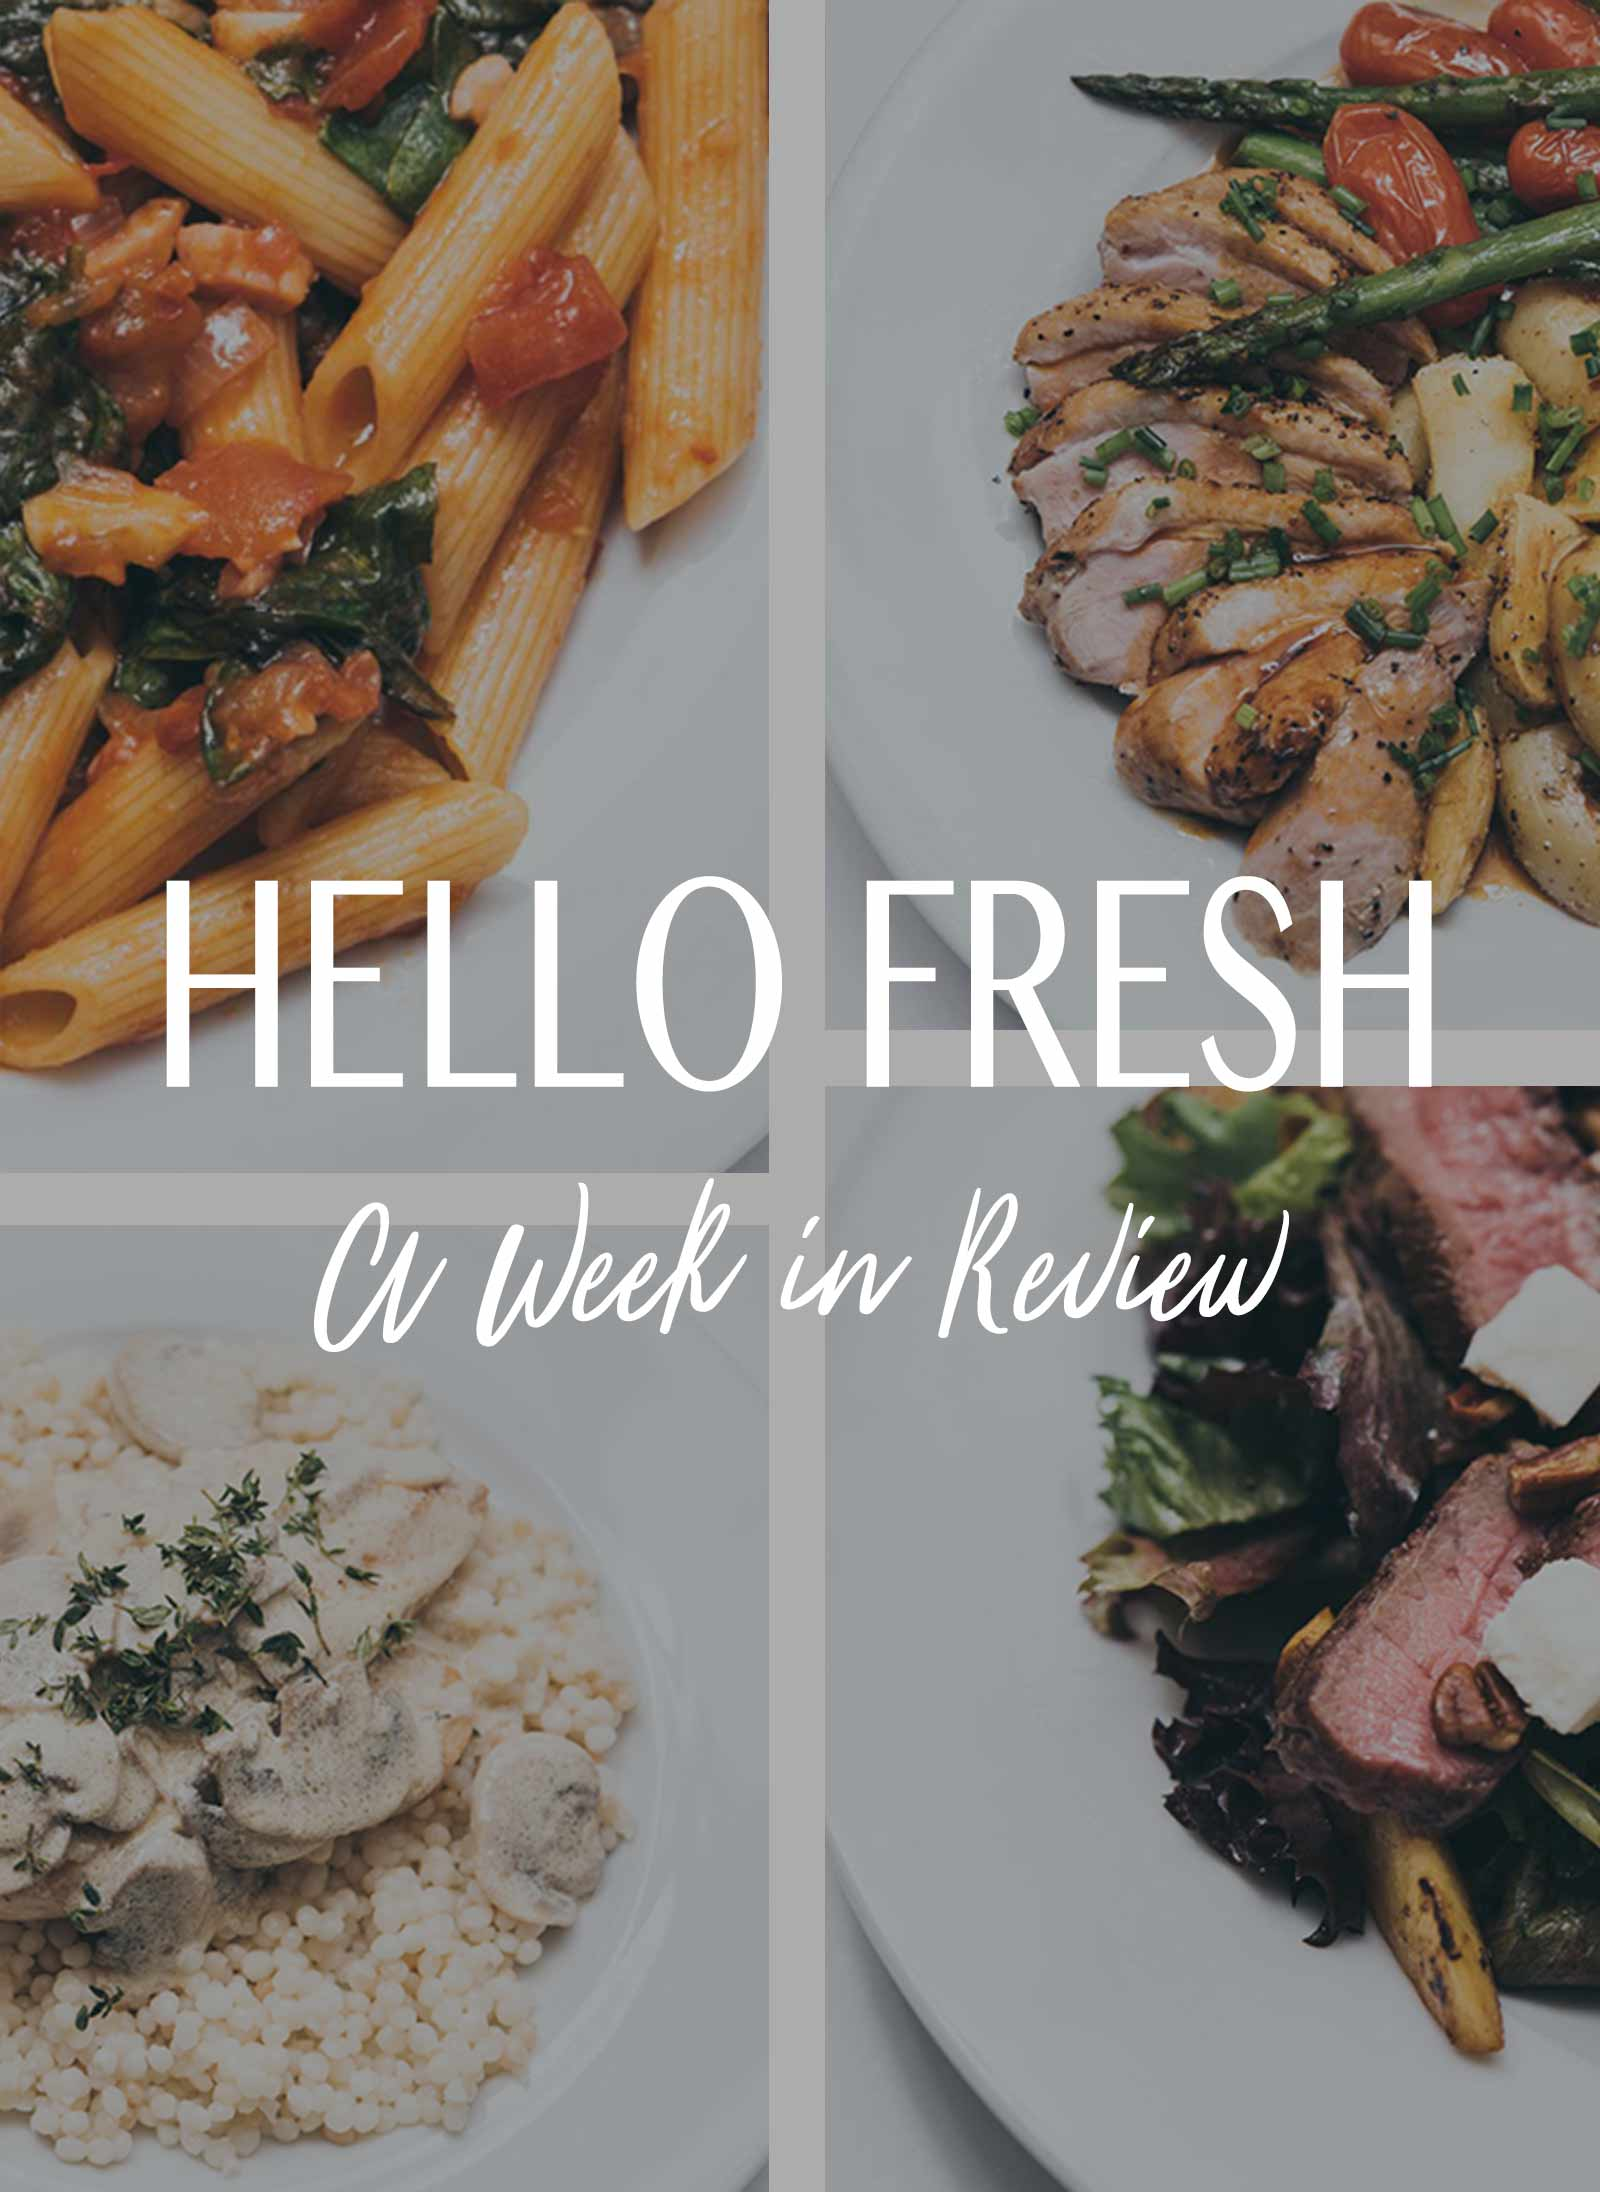 Buy Meal Kit Delivery Service  Hellofresh New Amazon